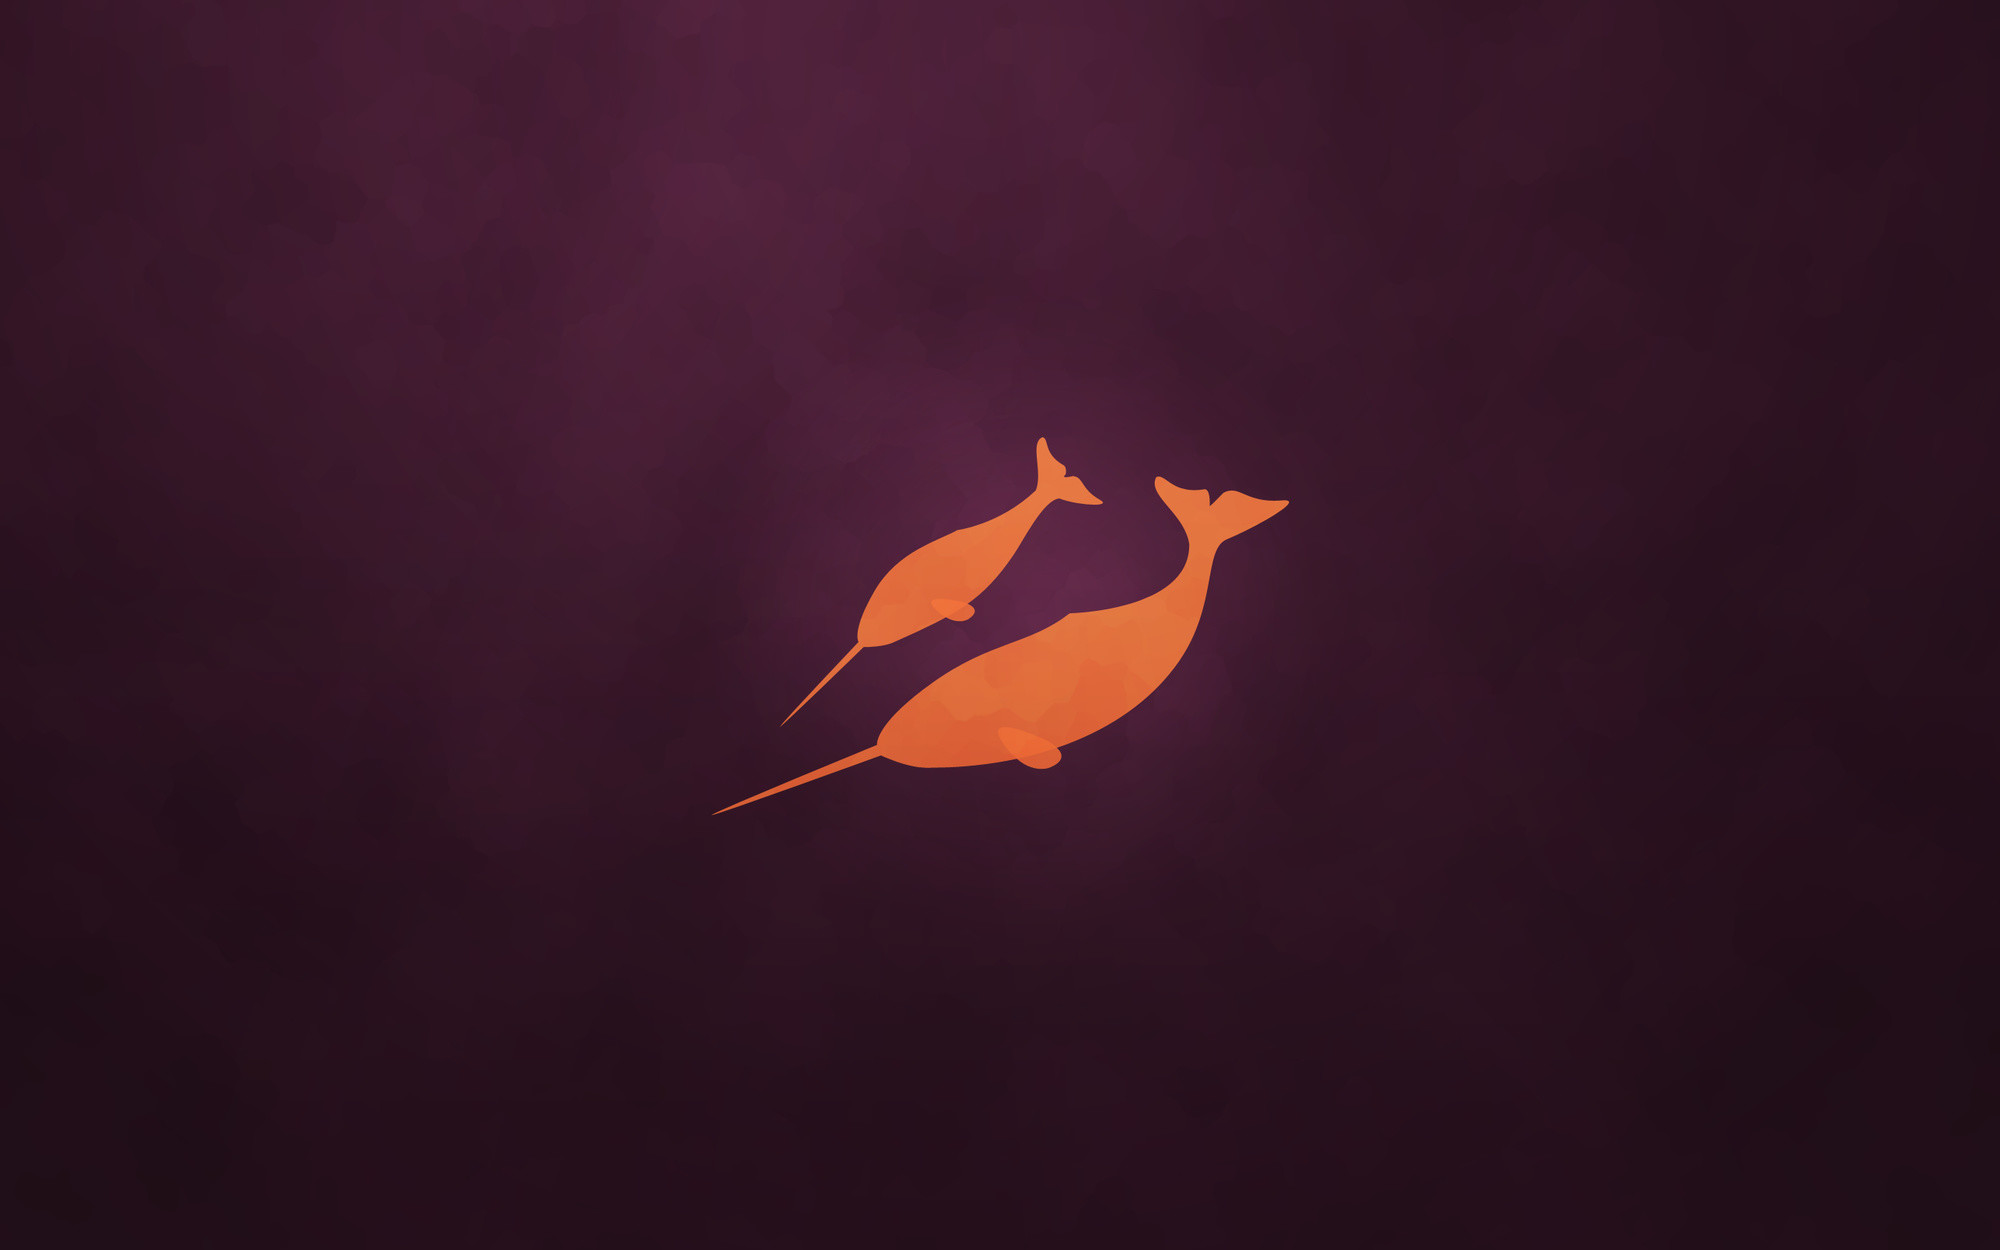 2000x1250 Ubuntu 11.04 adds 17 brand new wallpapers